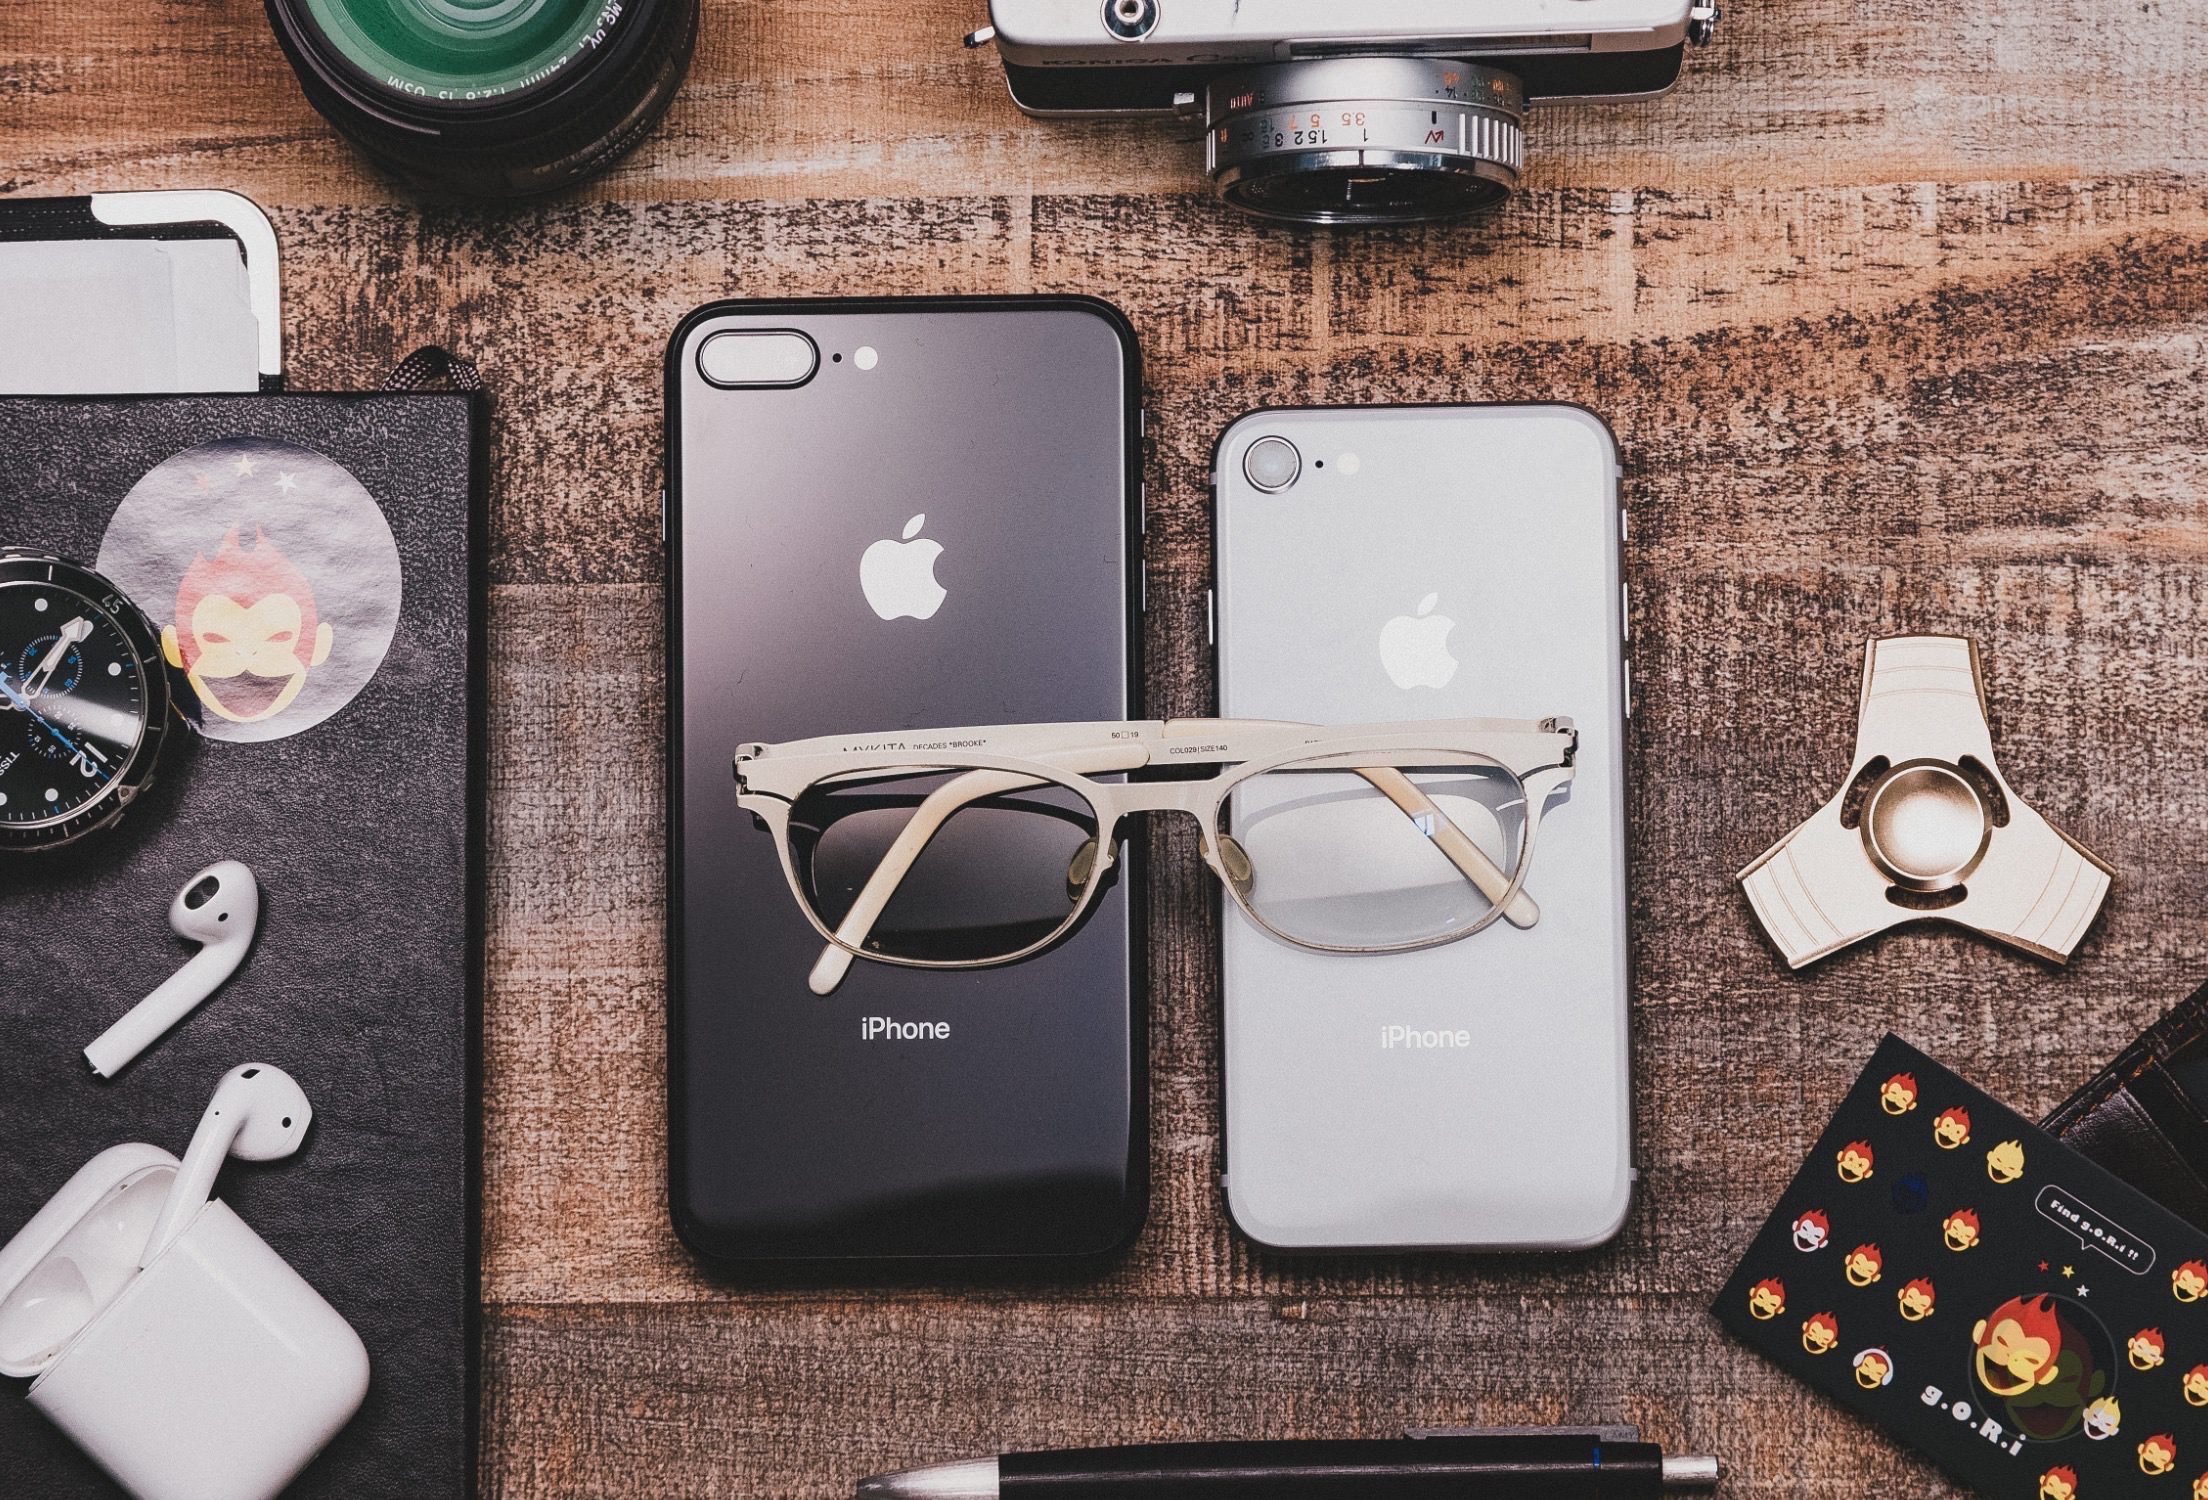 iPhone8-8Plus-with-Gadgets-03.jpg